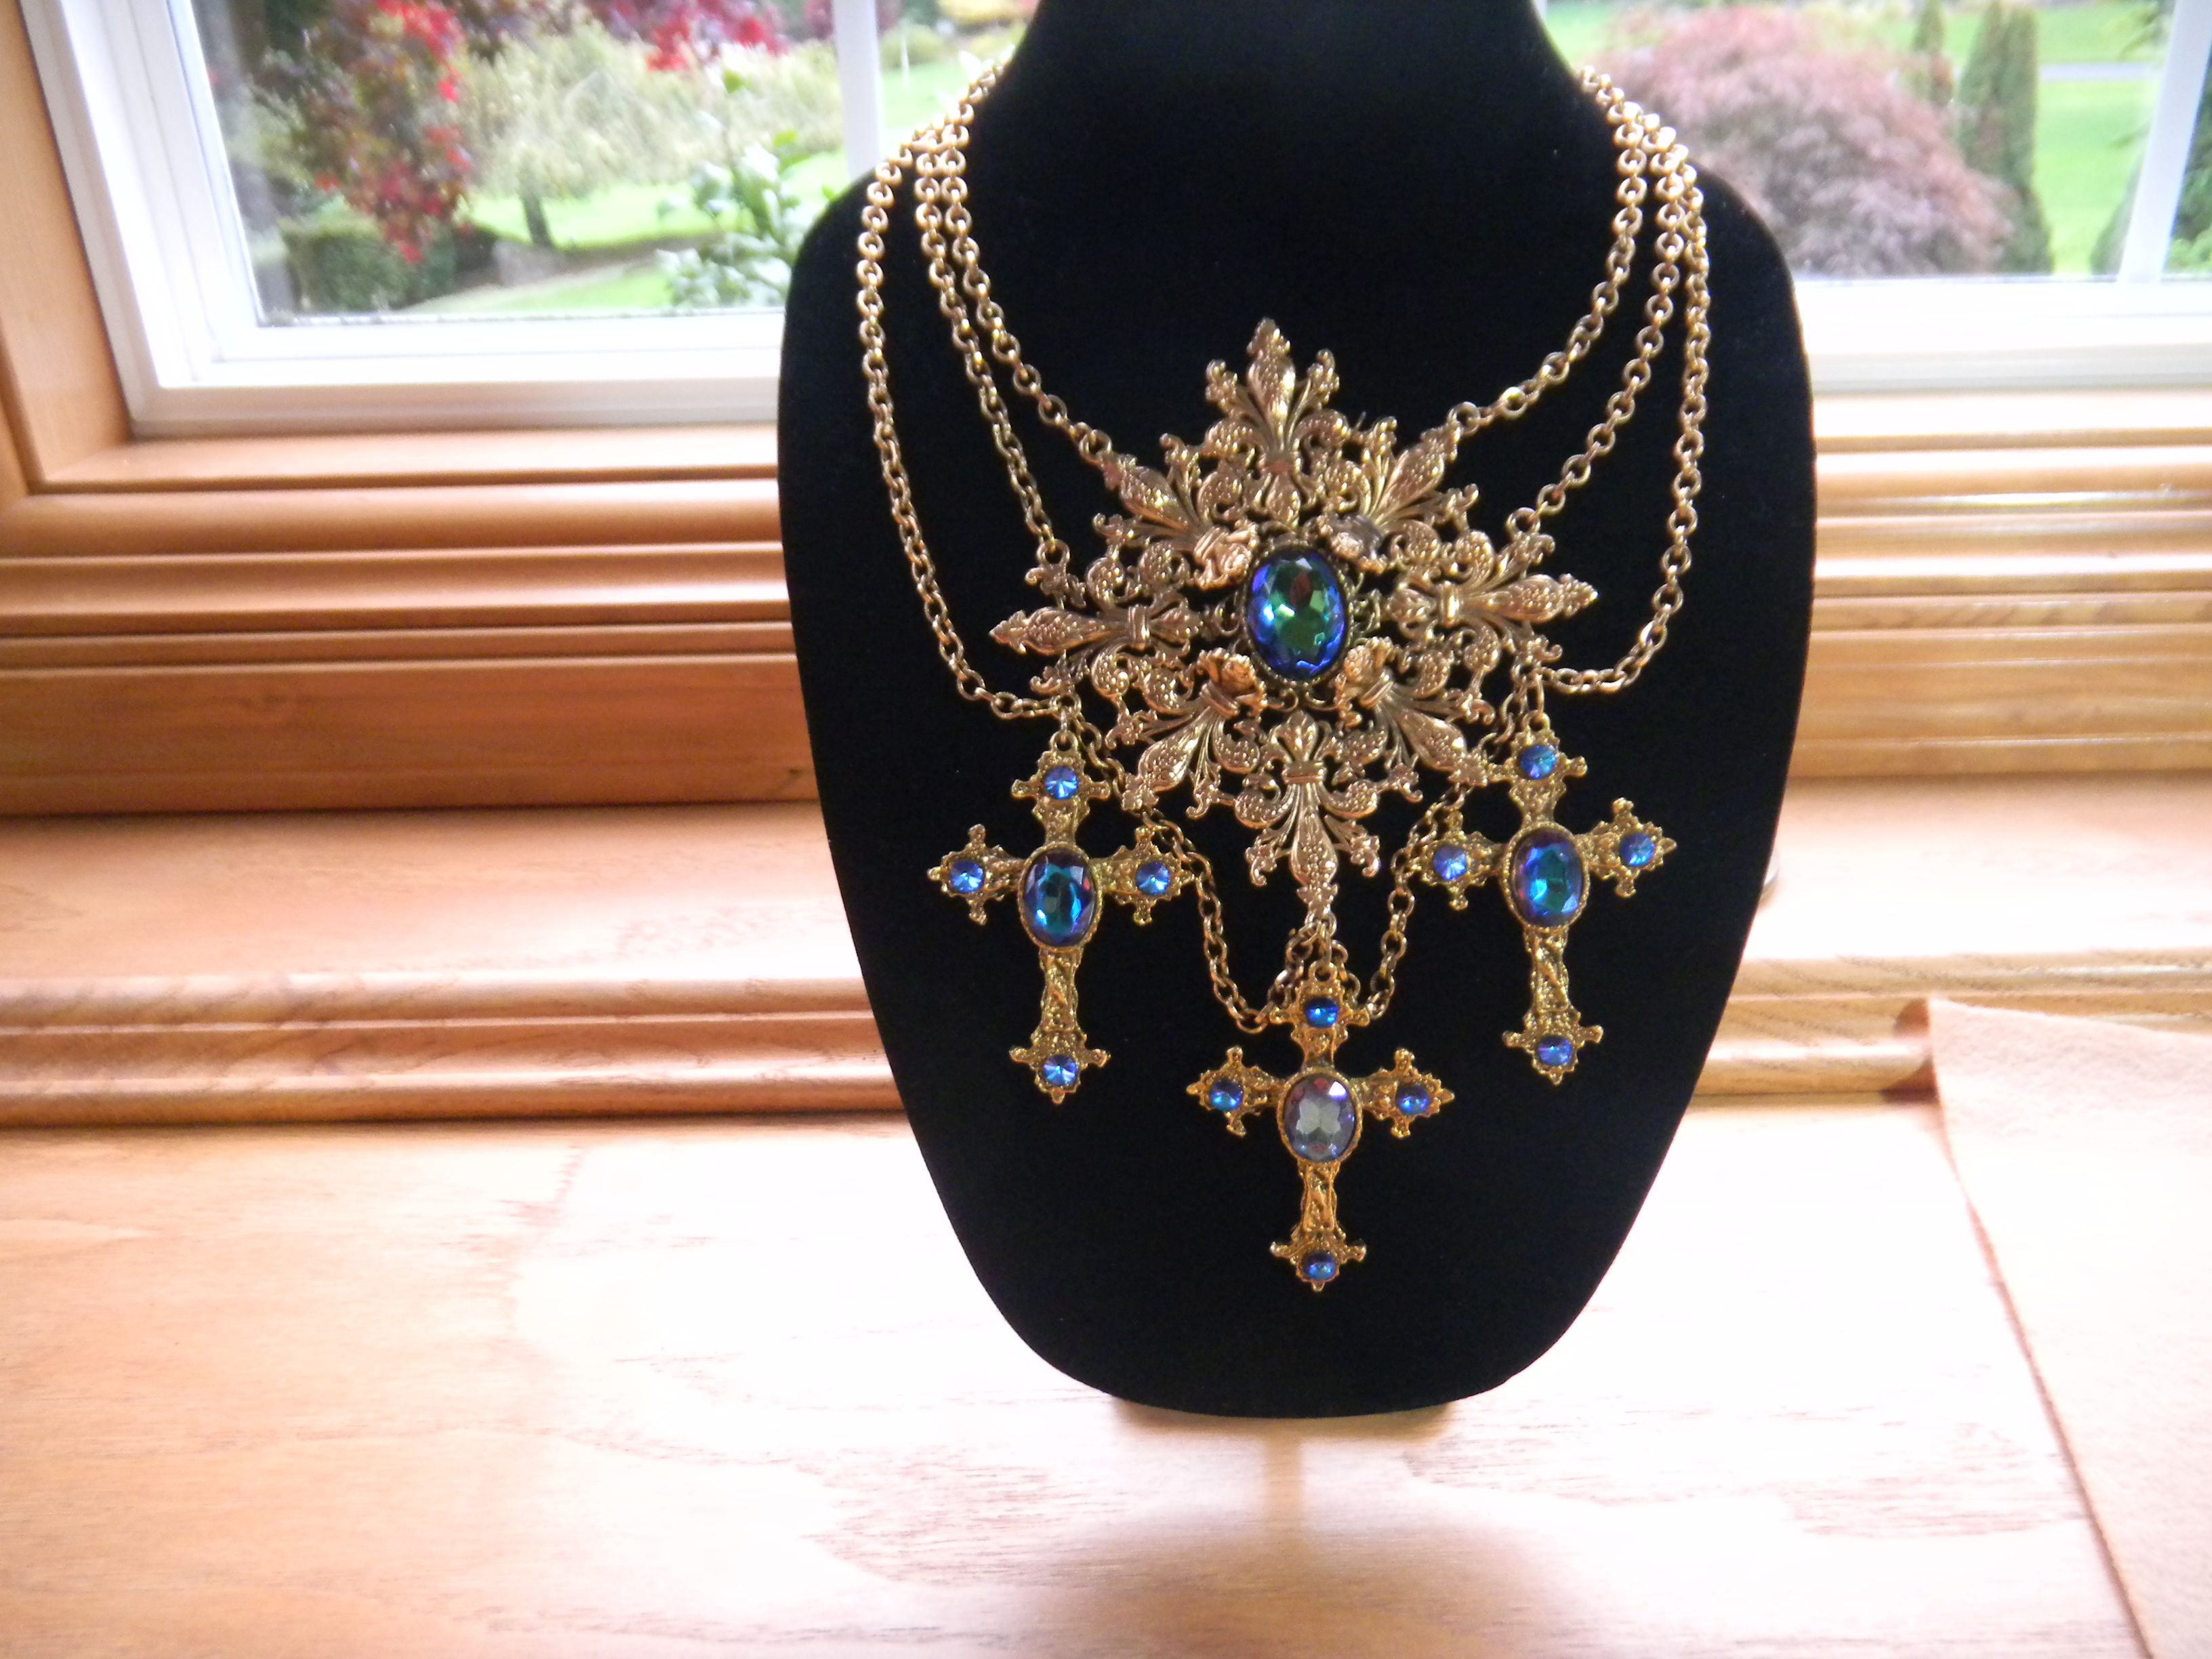 faux dazzles lucite pbcs apps article pendant fabulous exhibit belly and pendants trifari jewelry delights jelly dll spider costume circa frog ep